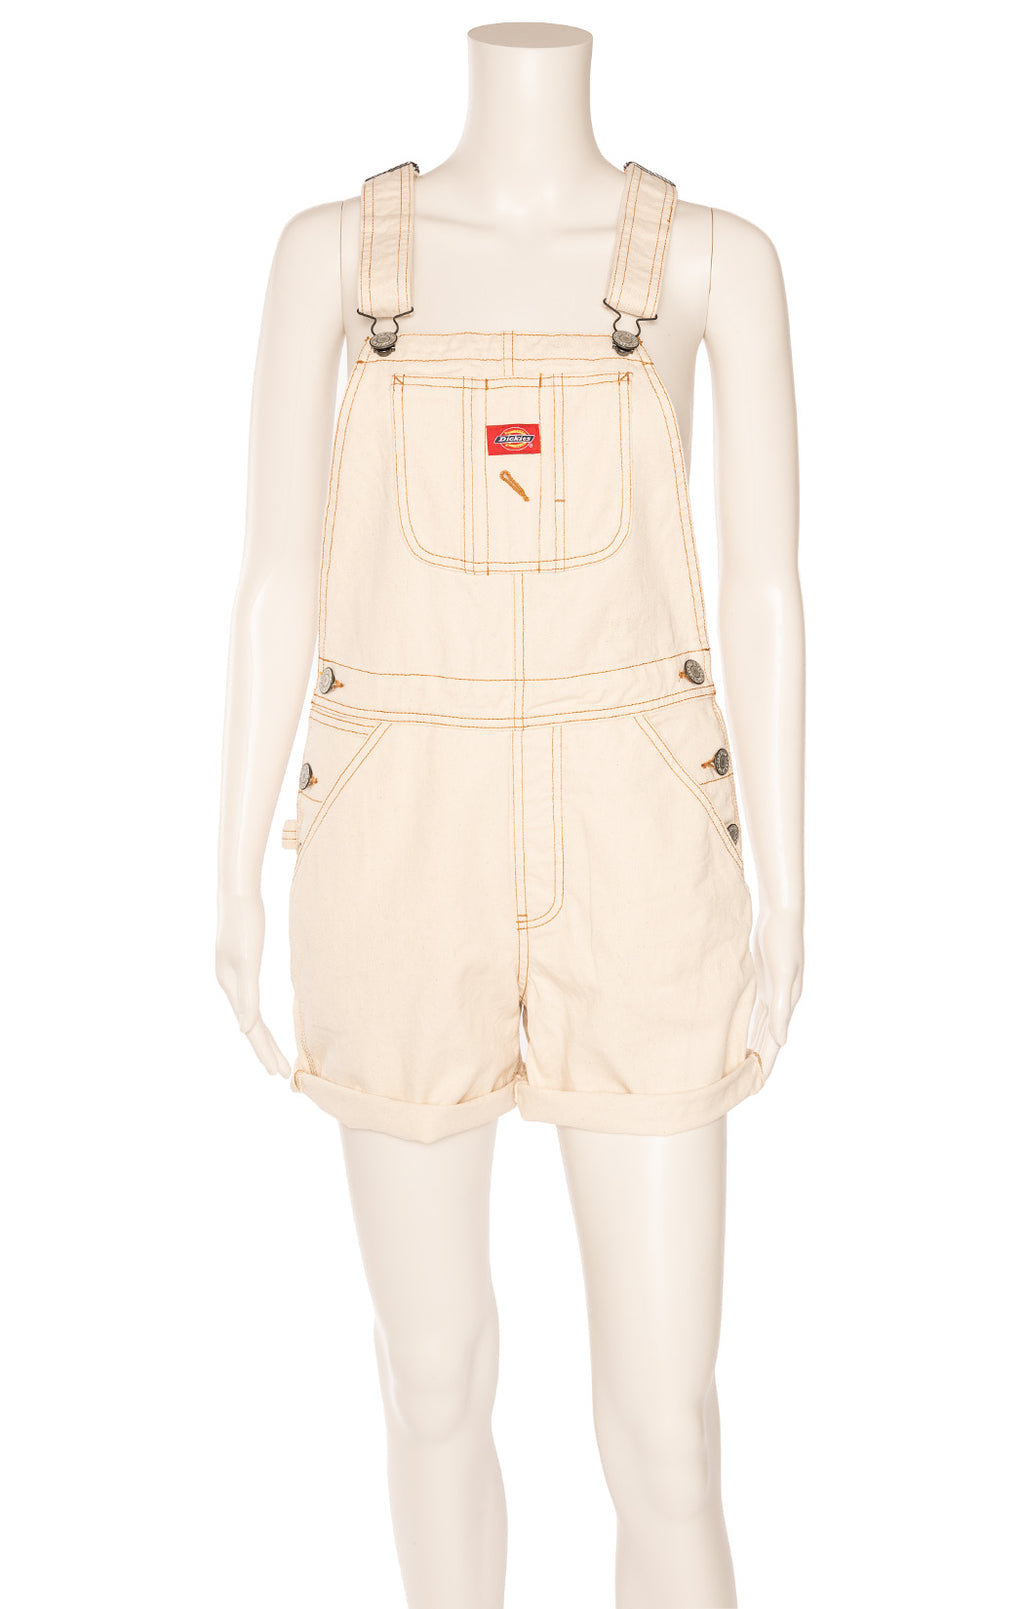 Beige denim carpenter overalls